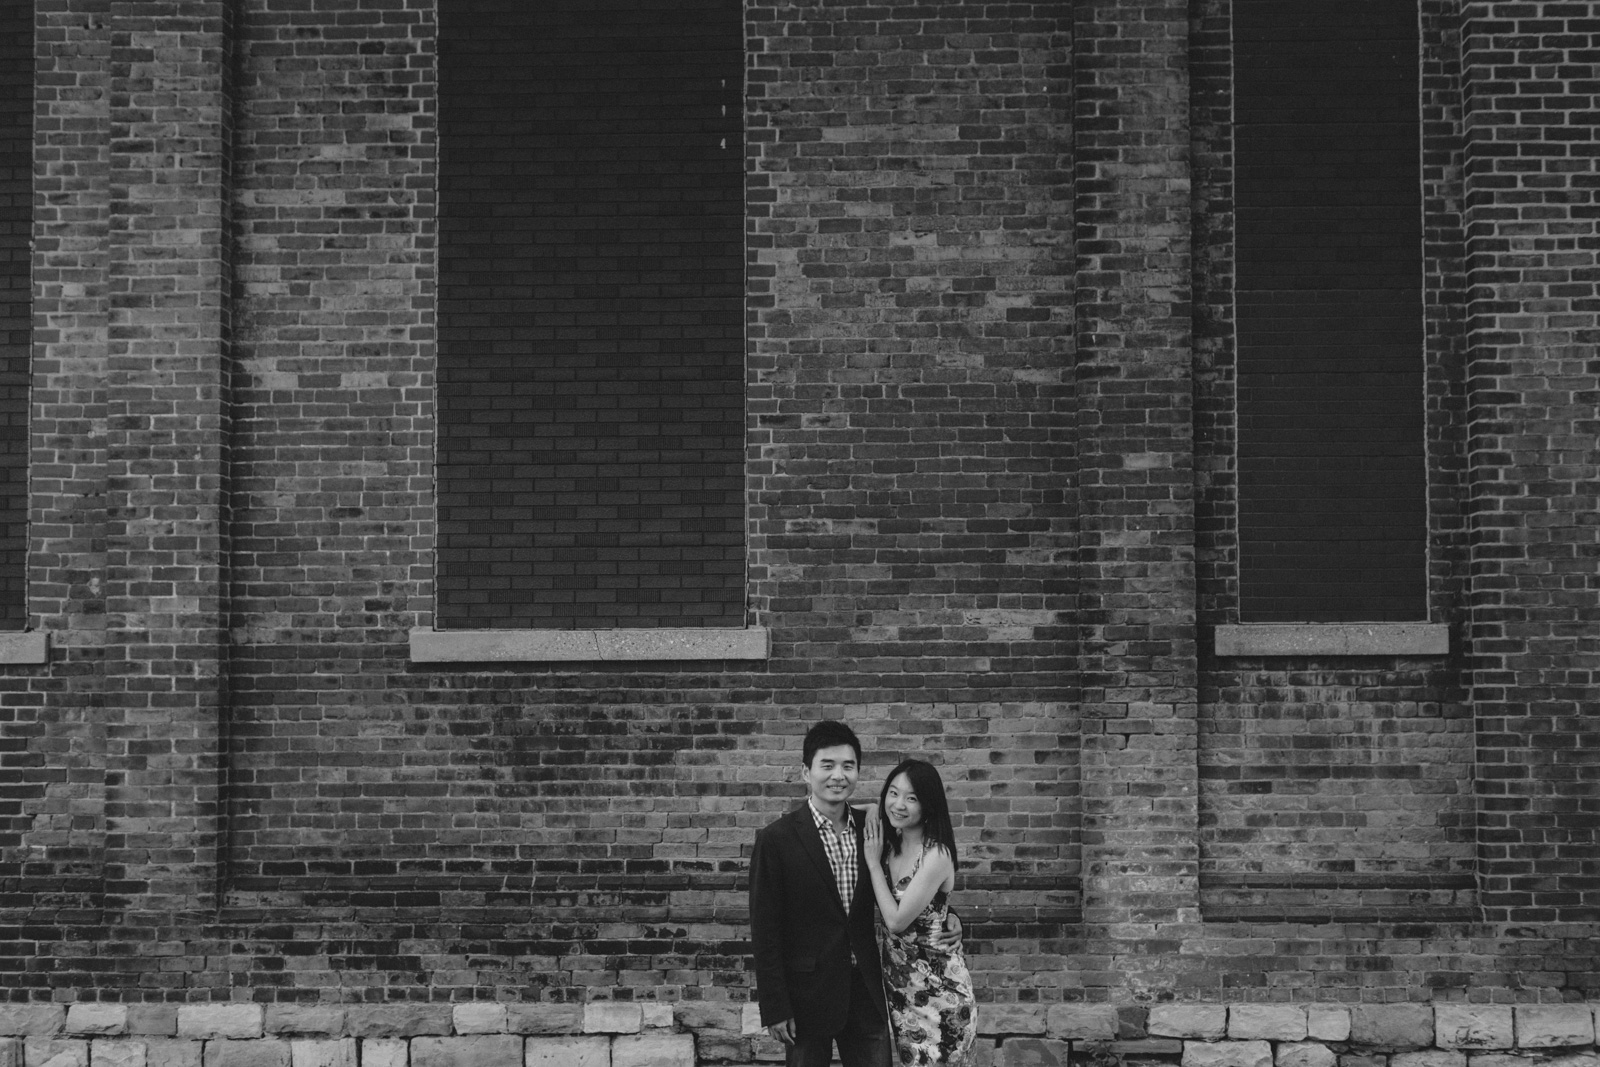 Distillery-District-engagement-photos-Toronto-wedding-photography-by-Sam-Wong-of-Artanis-Collective_019.jpg